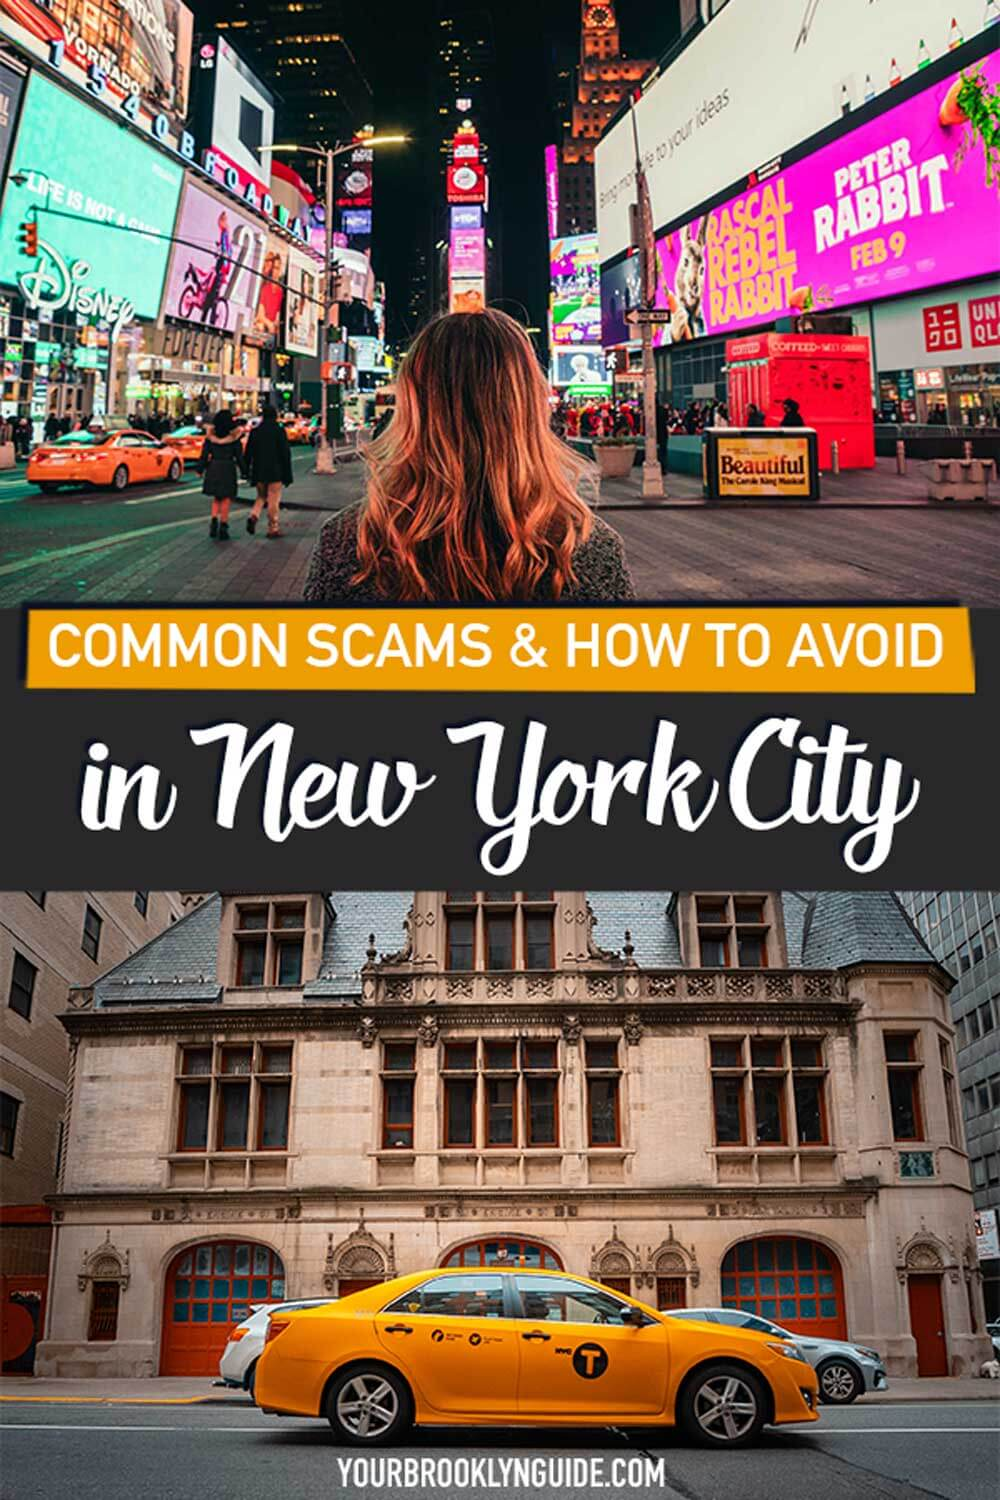 NYC-scams-and-how-to-avoid-them